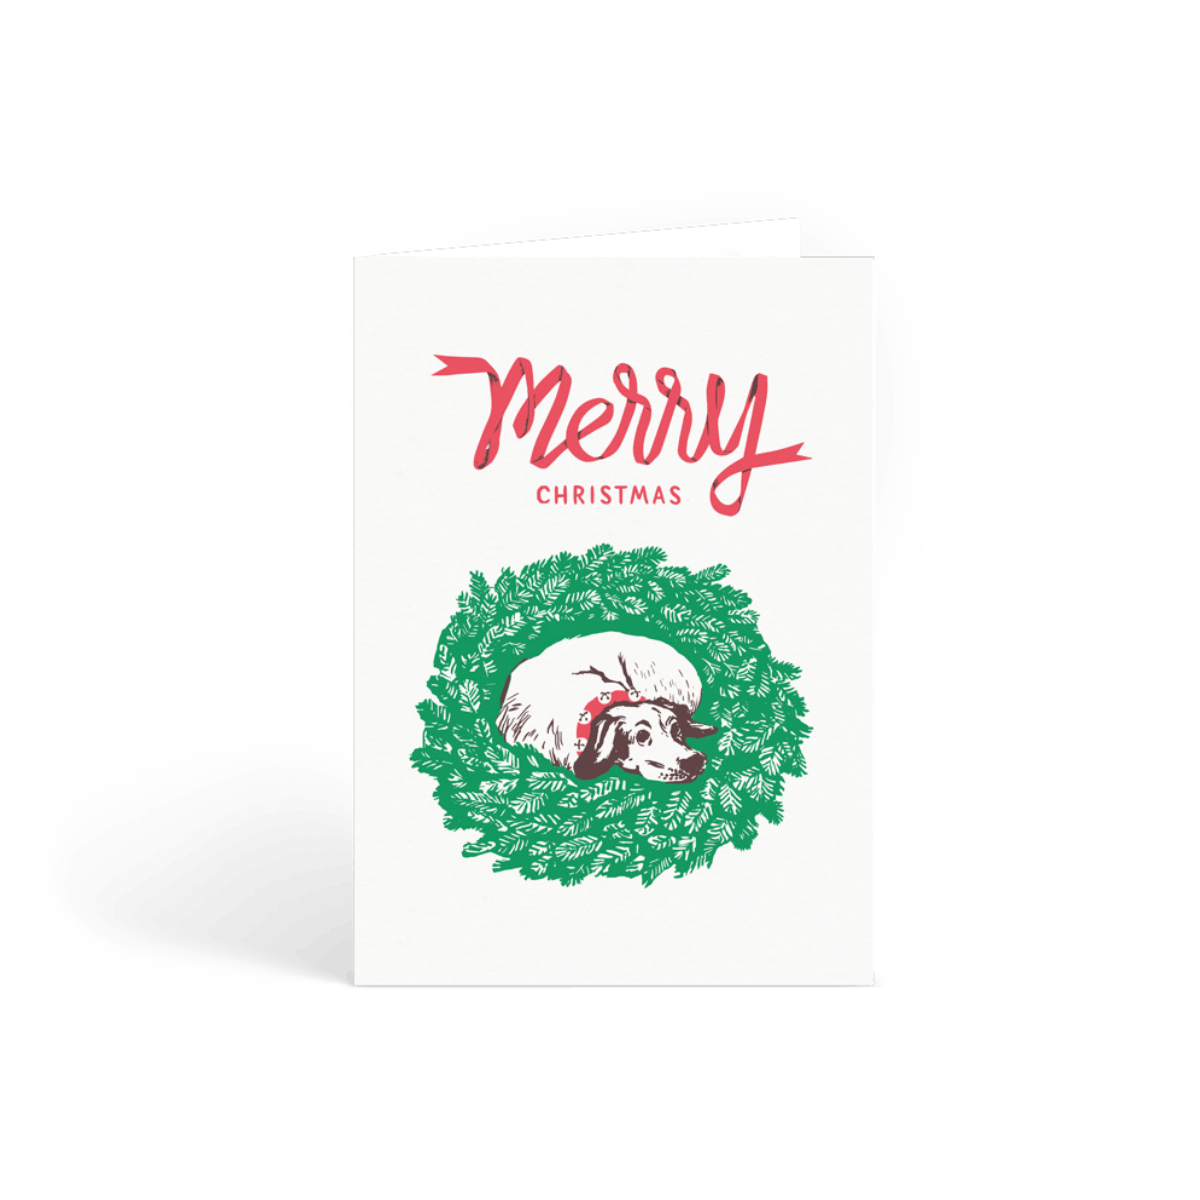 Https%3a%2f%2fwww.papier.com%2fproduct image%2f41519%2f2%2fmerry christmas dog 10586 front 1570704380.png?ixlib=rb 1.1